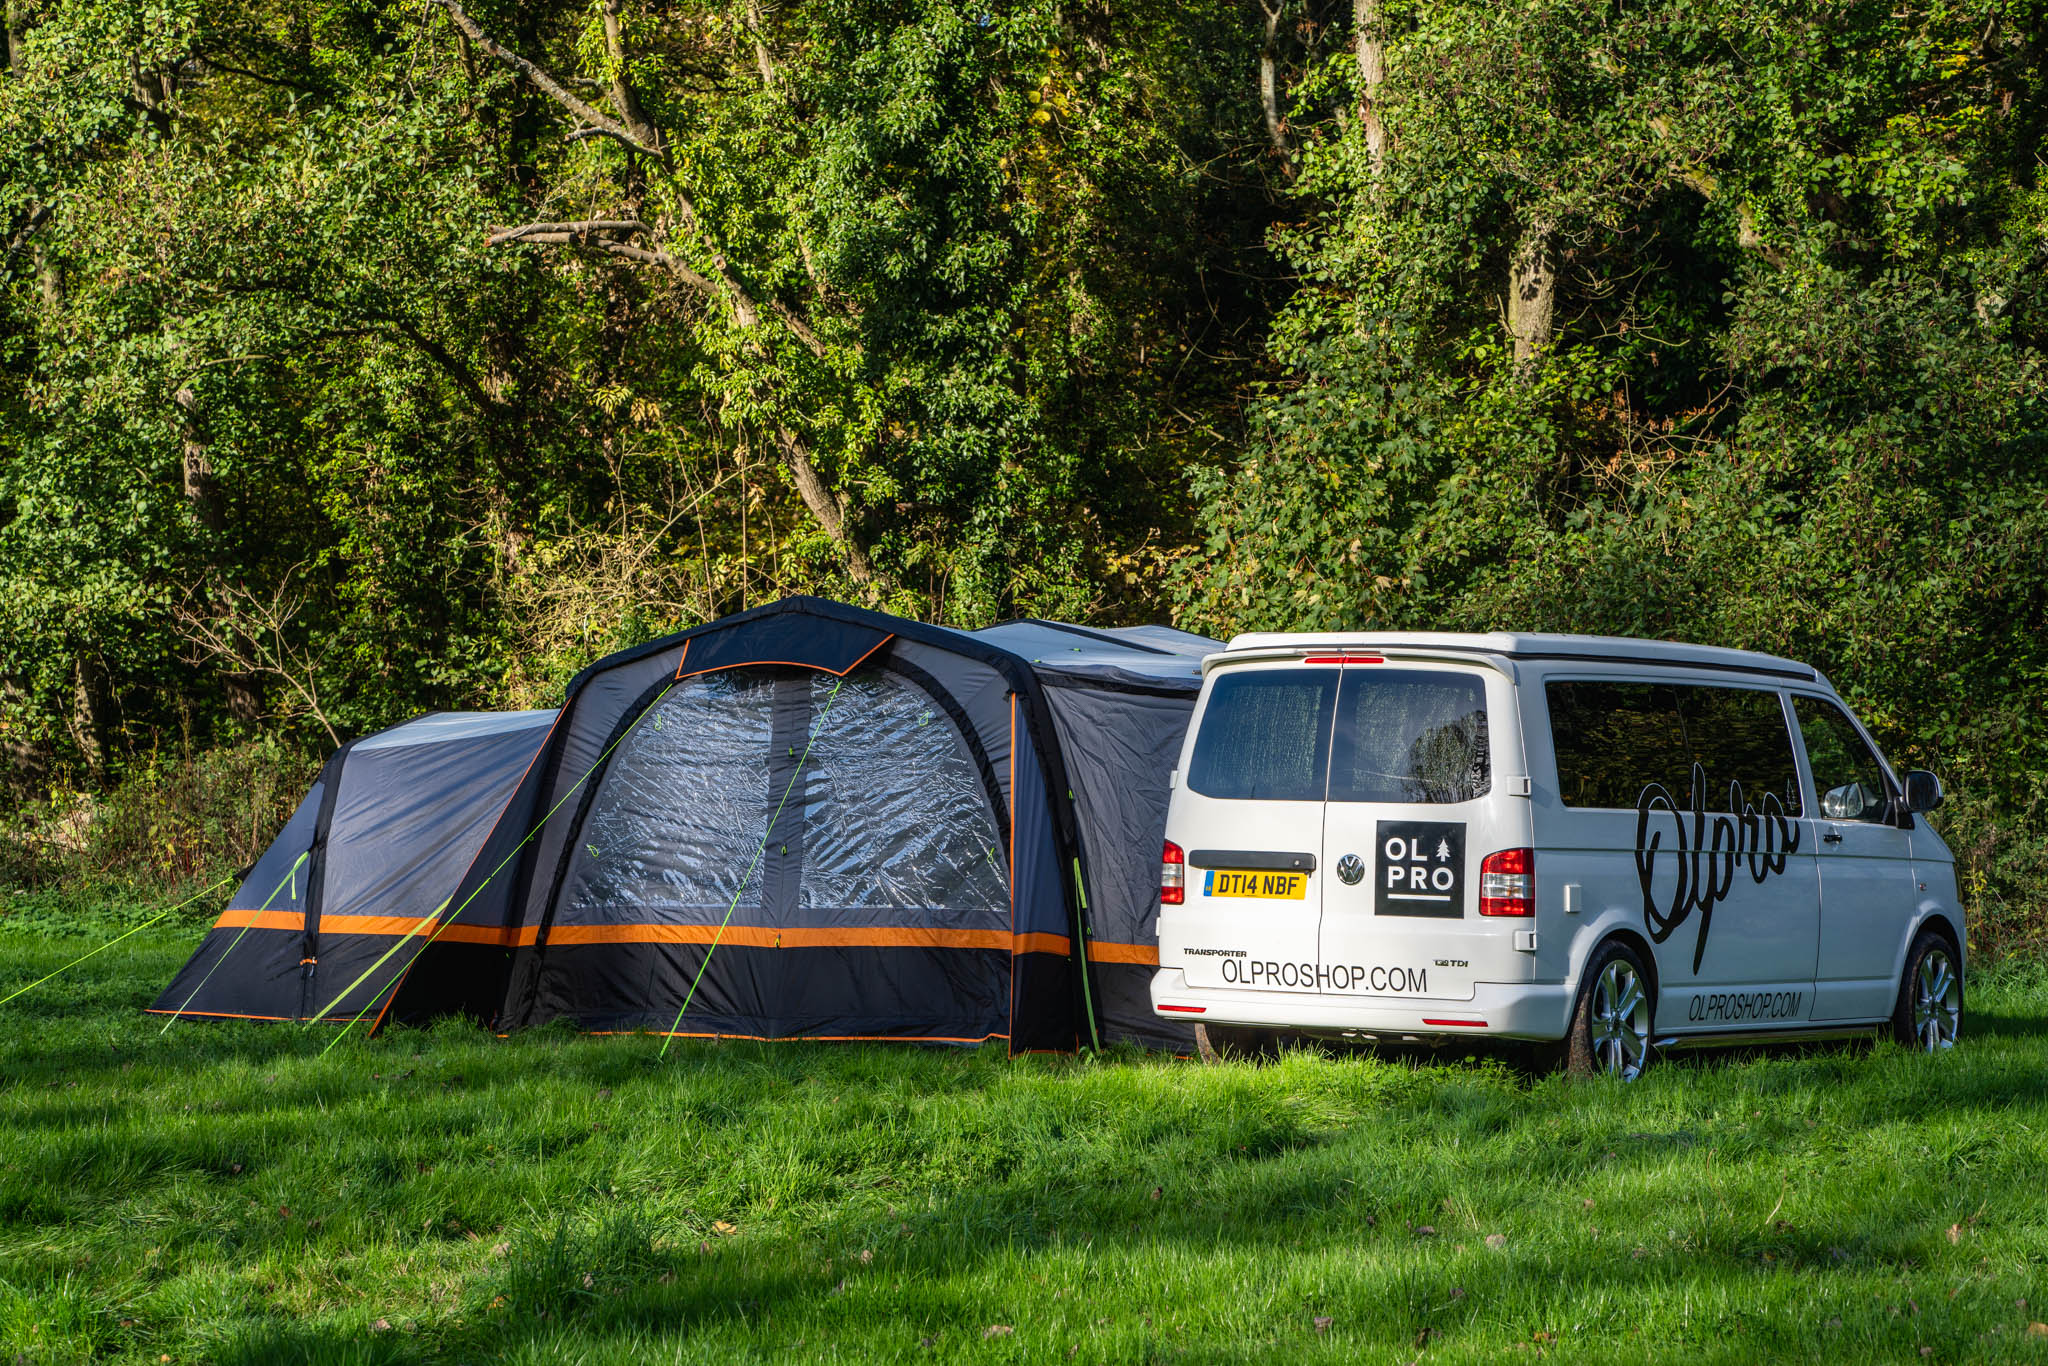 Olpro corpoarte video production van and tent